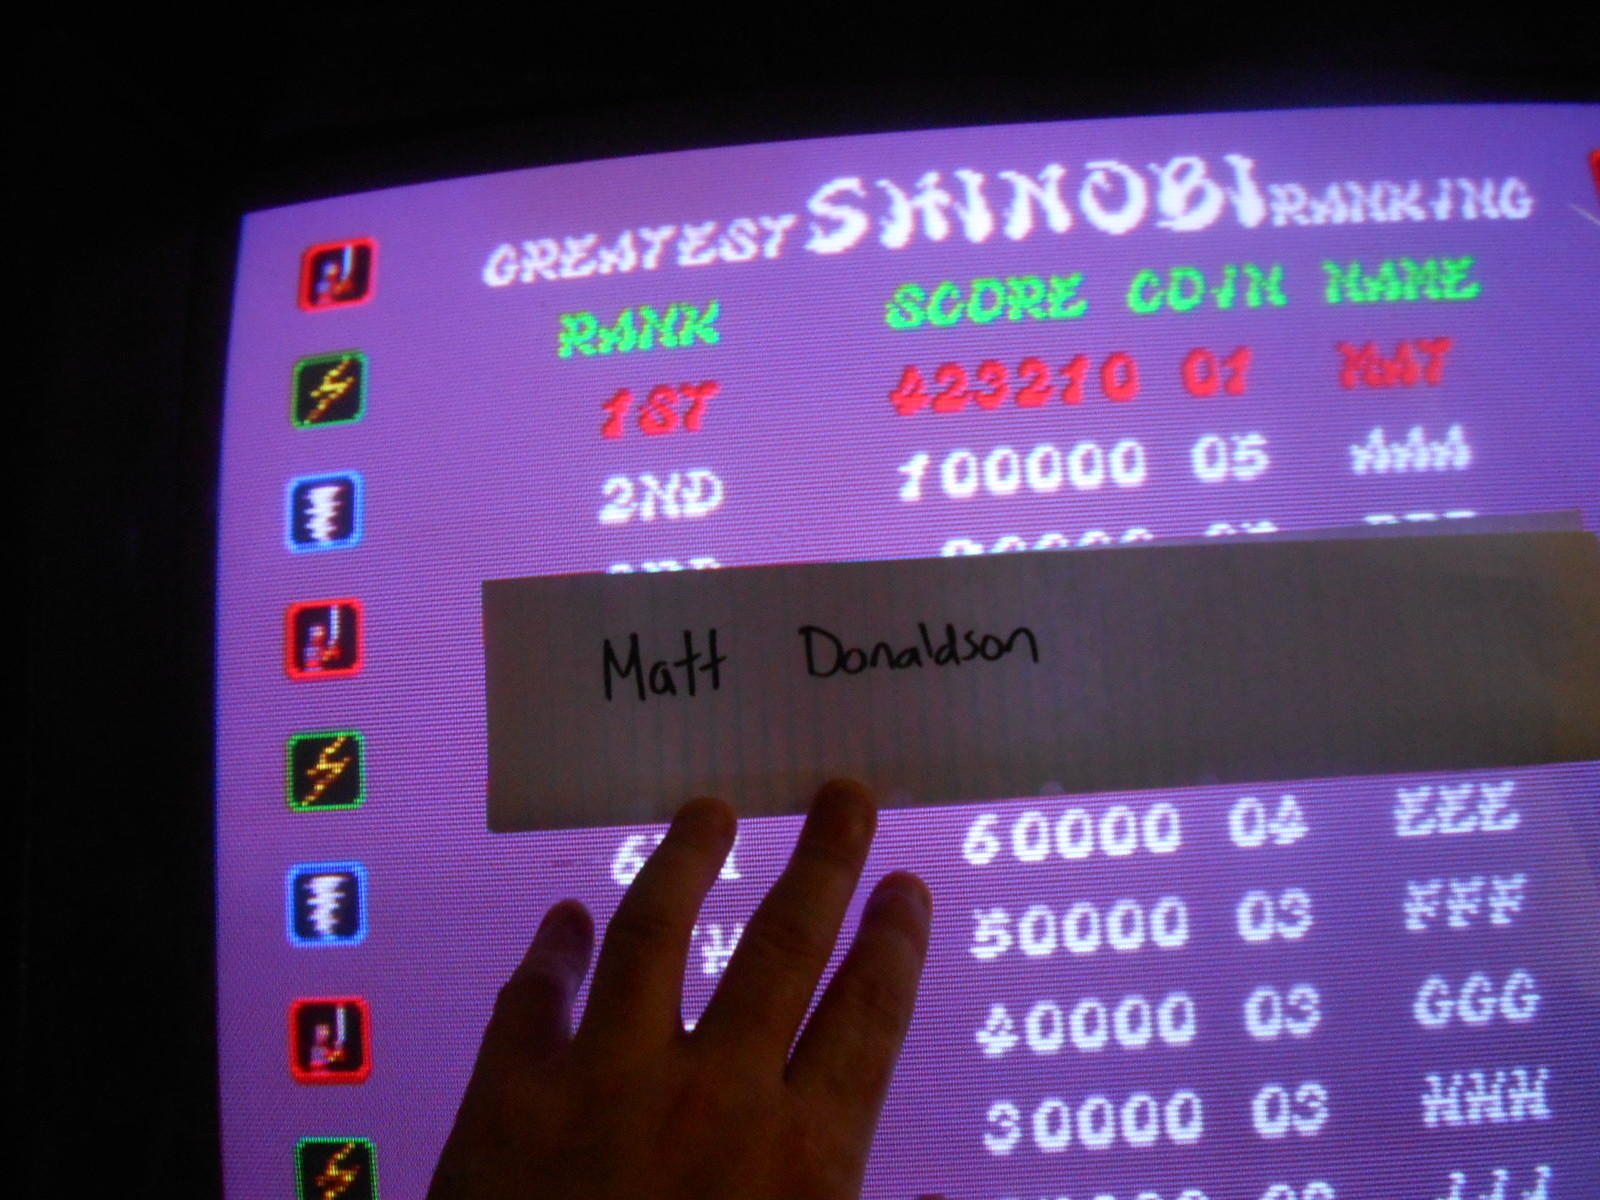 MattDonaldson: Shinobi (Arcade Emulated / M.A.M.E.) 423,210 points on 2015-04-30 20:15:49